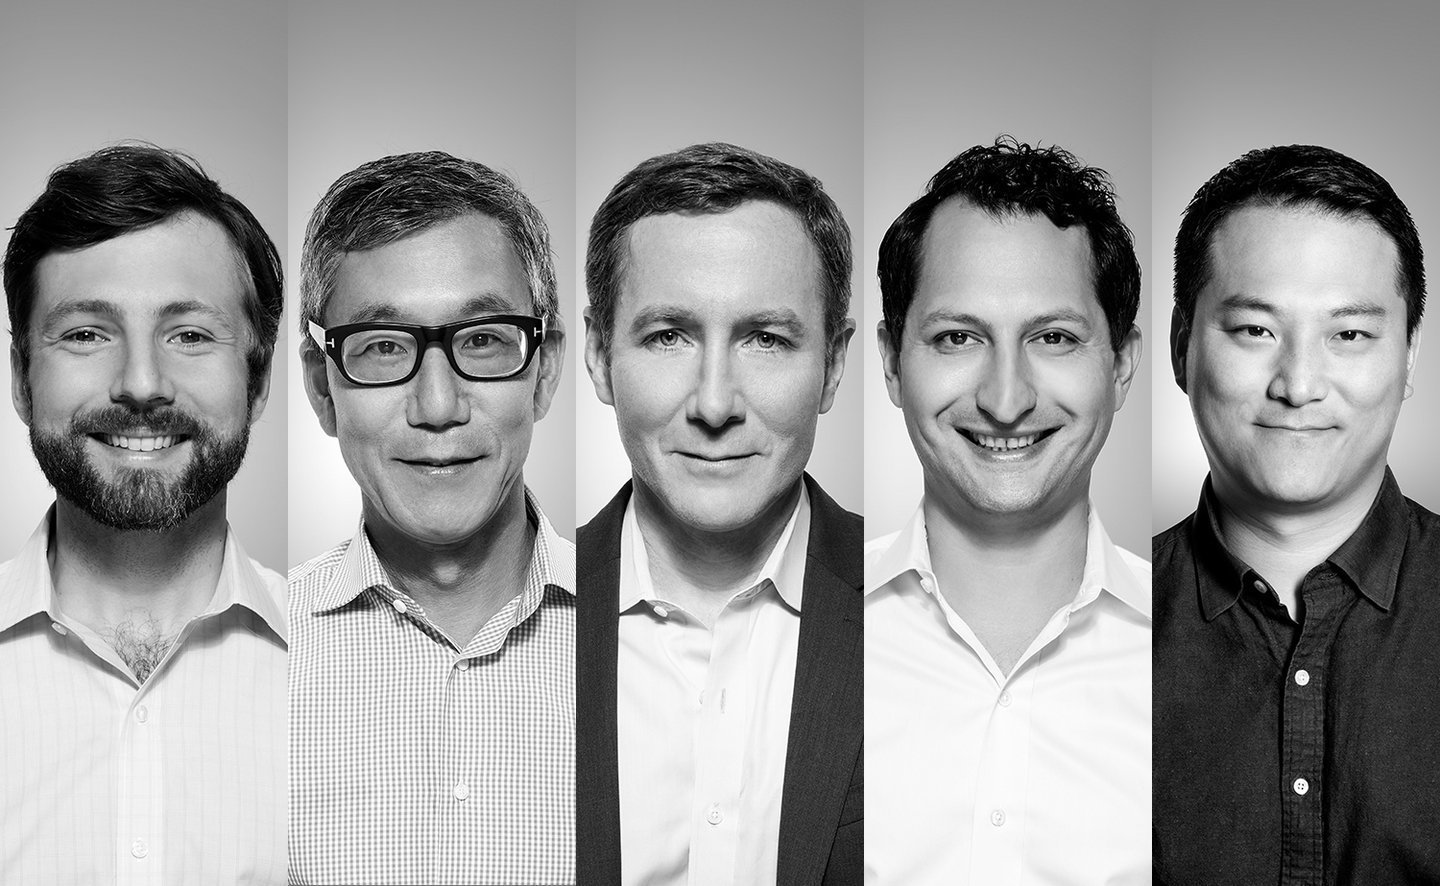 Founders: Graham Stanton, Hisao Kushi, John Foley, Tom Cortese, Yony Feng